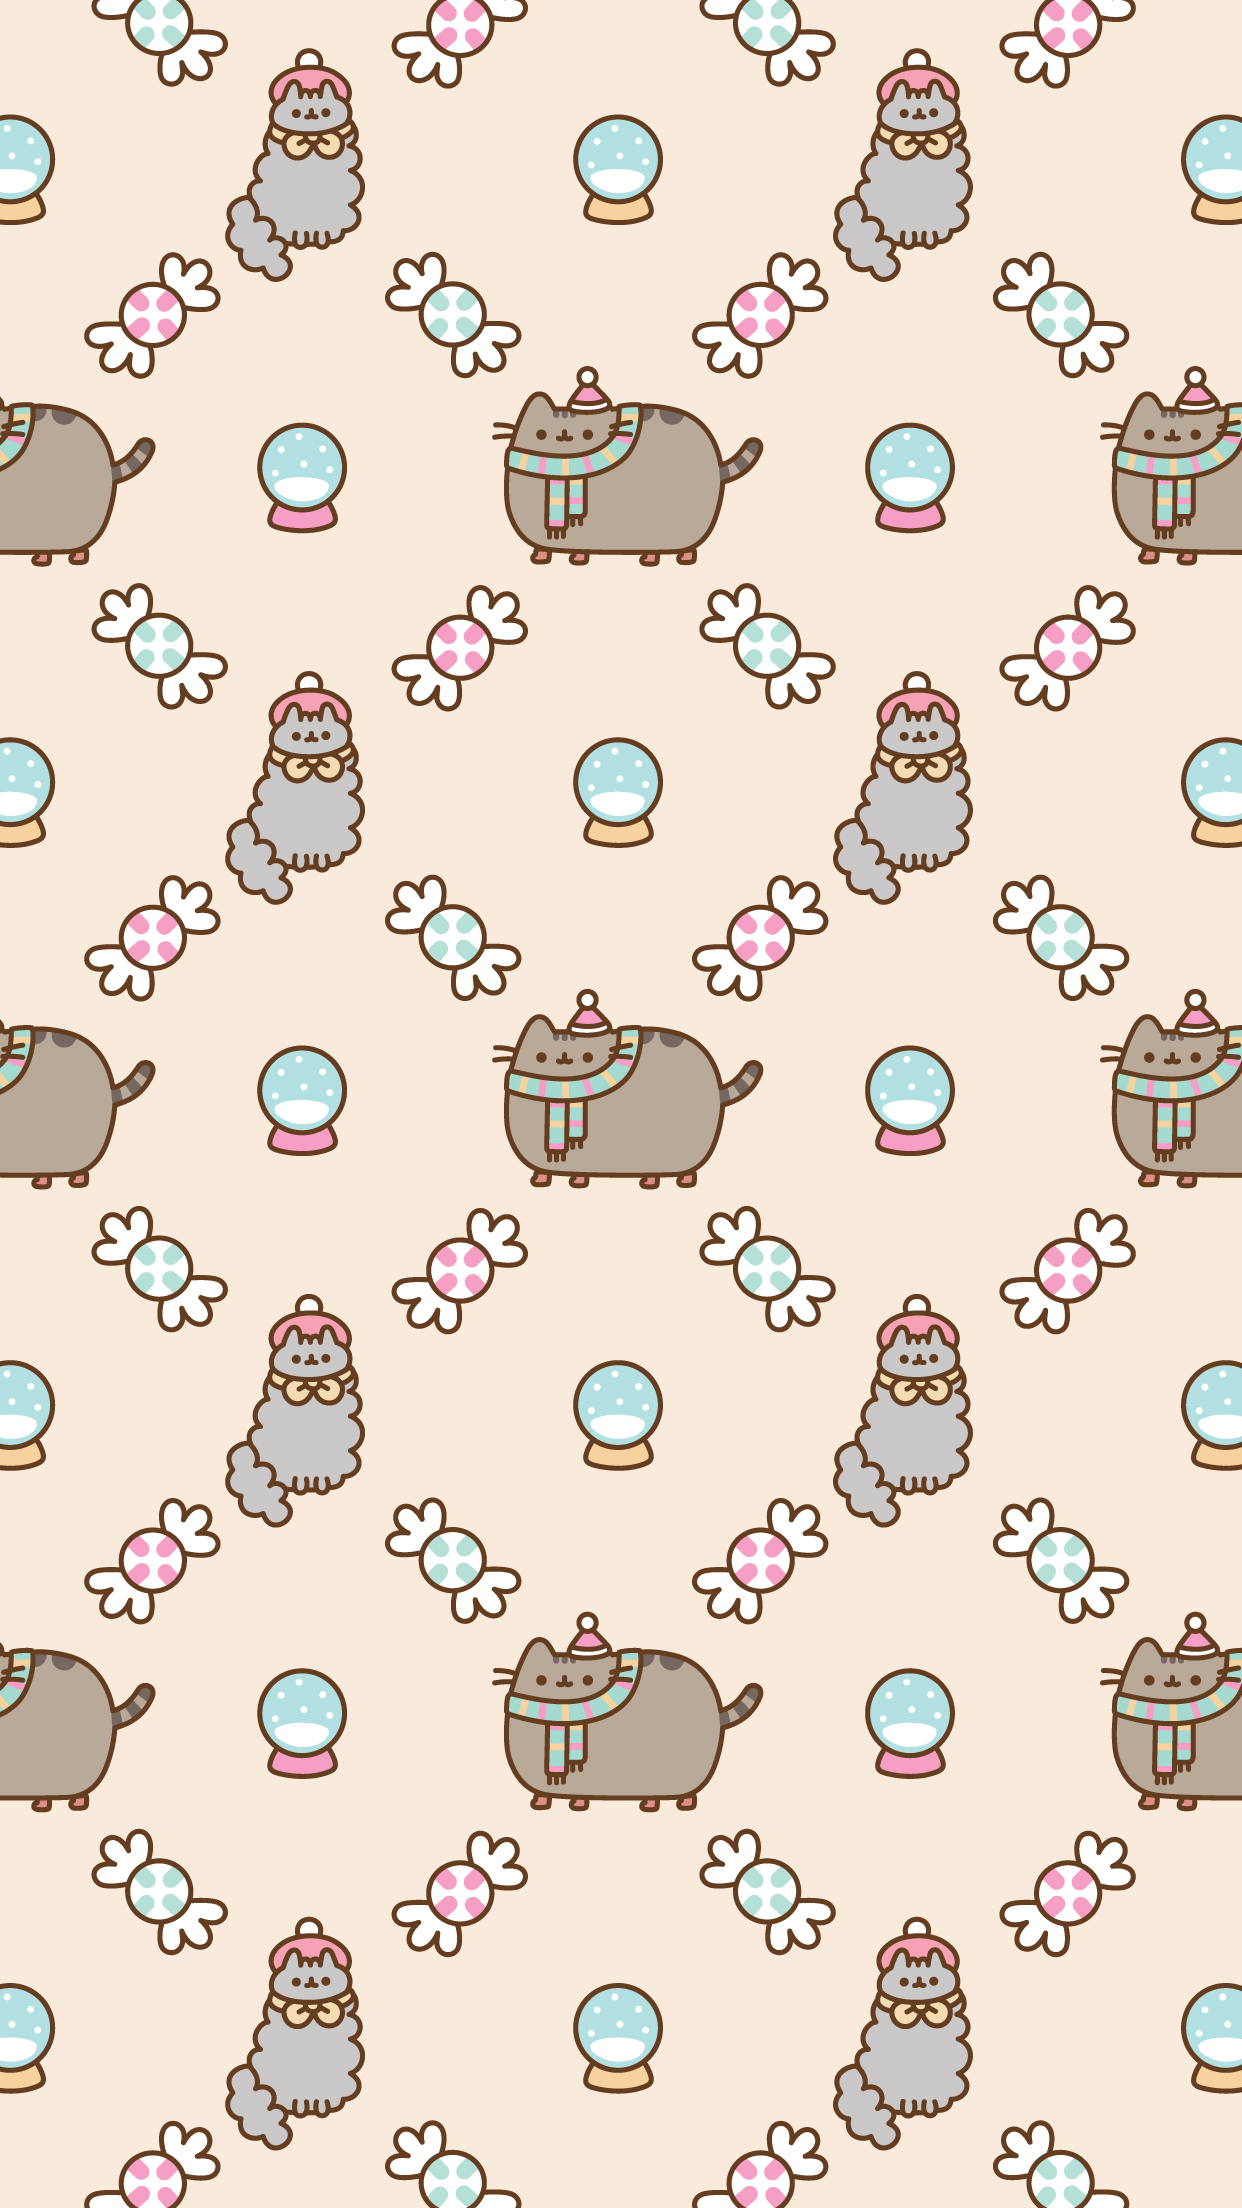 Free Christmas Pusheen Android and iPhone® Wallpapers - #ClairesBlog